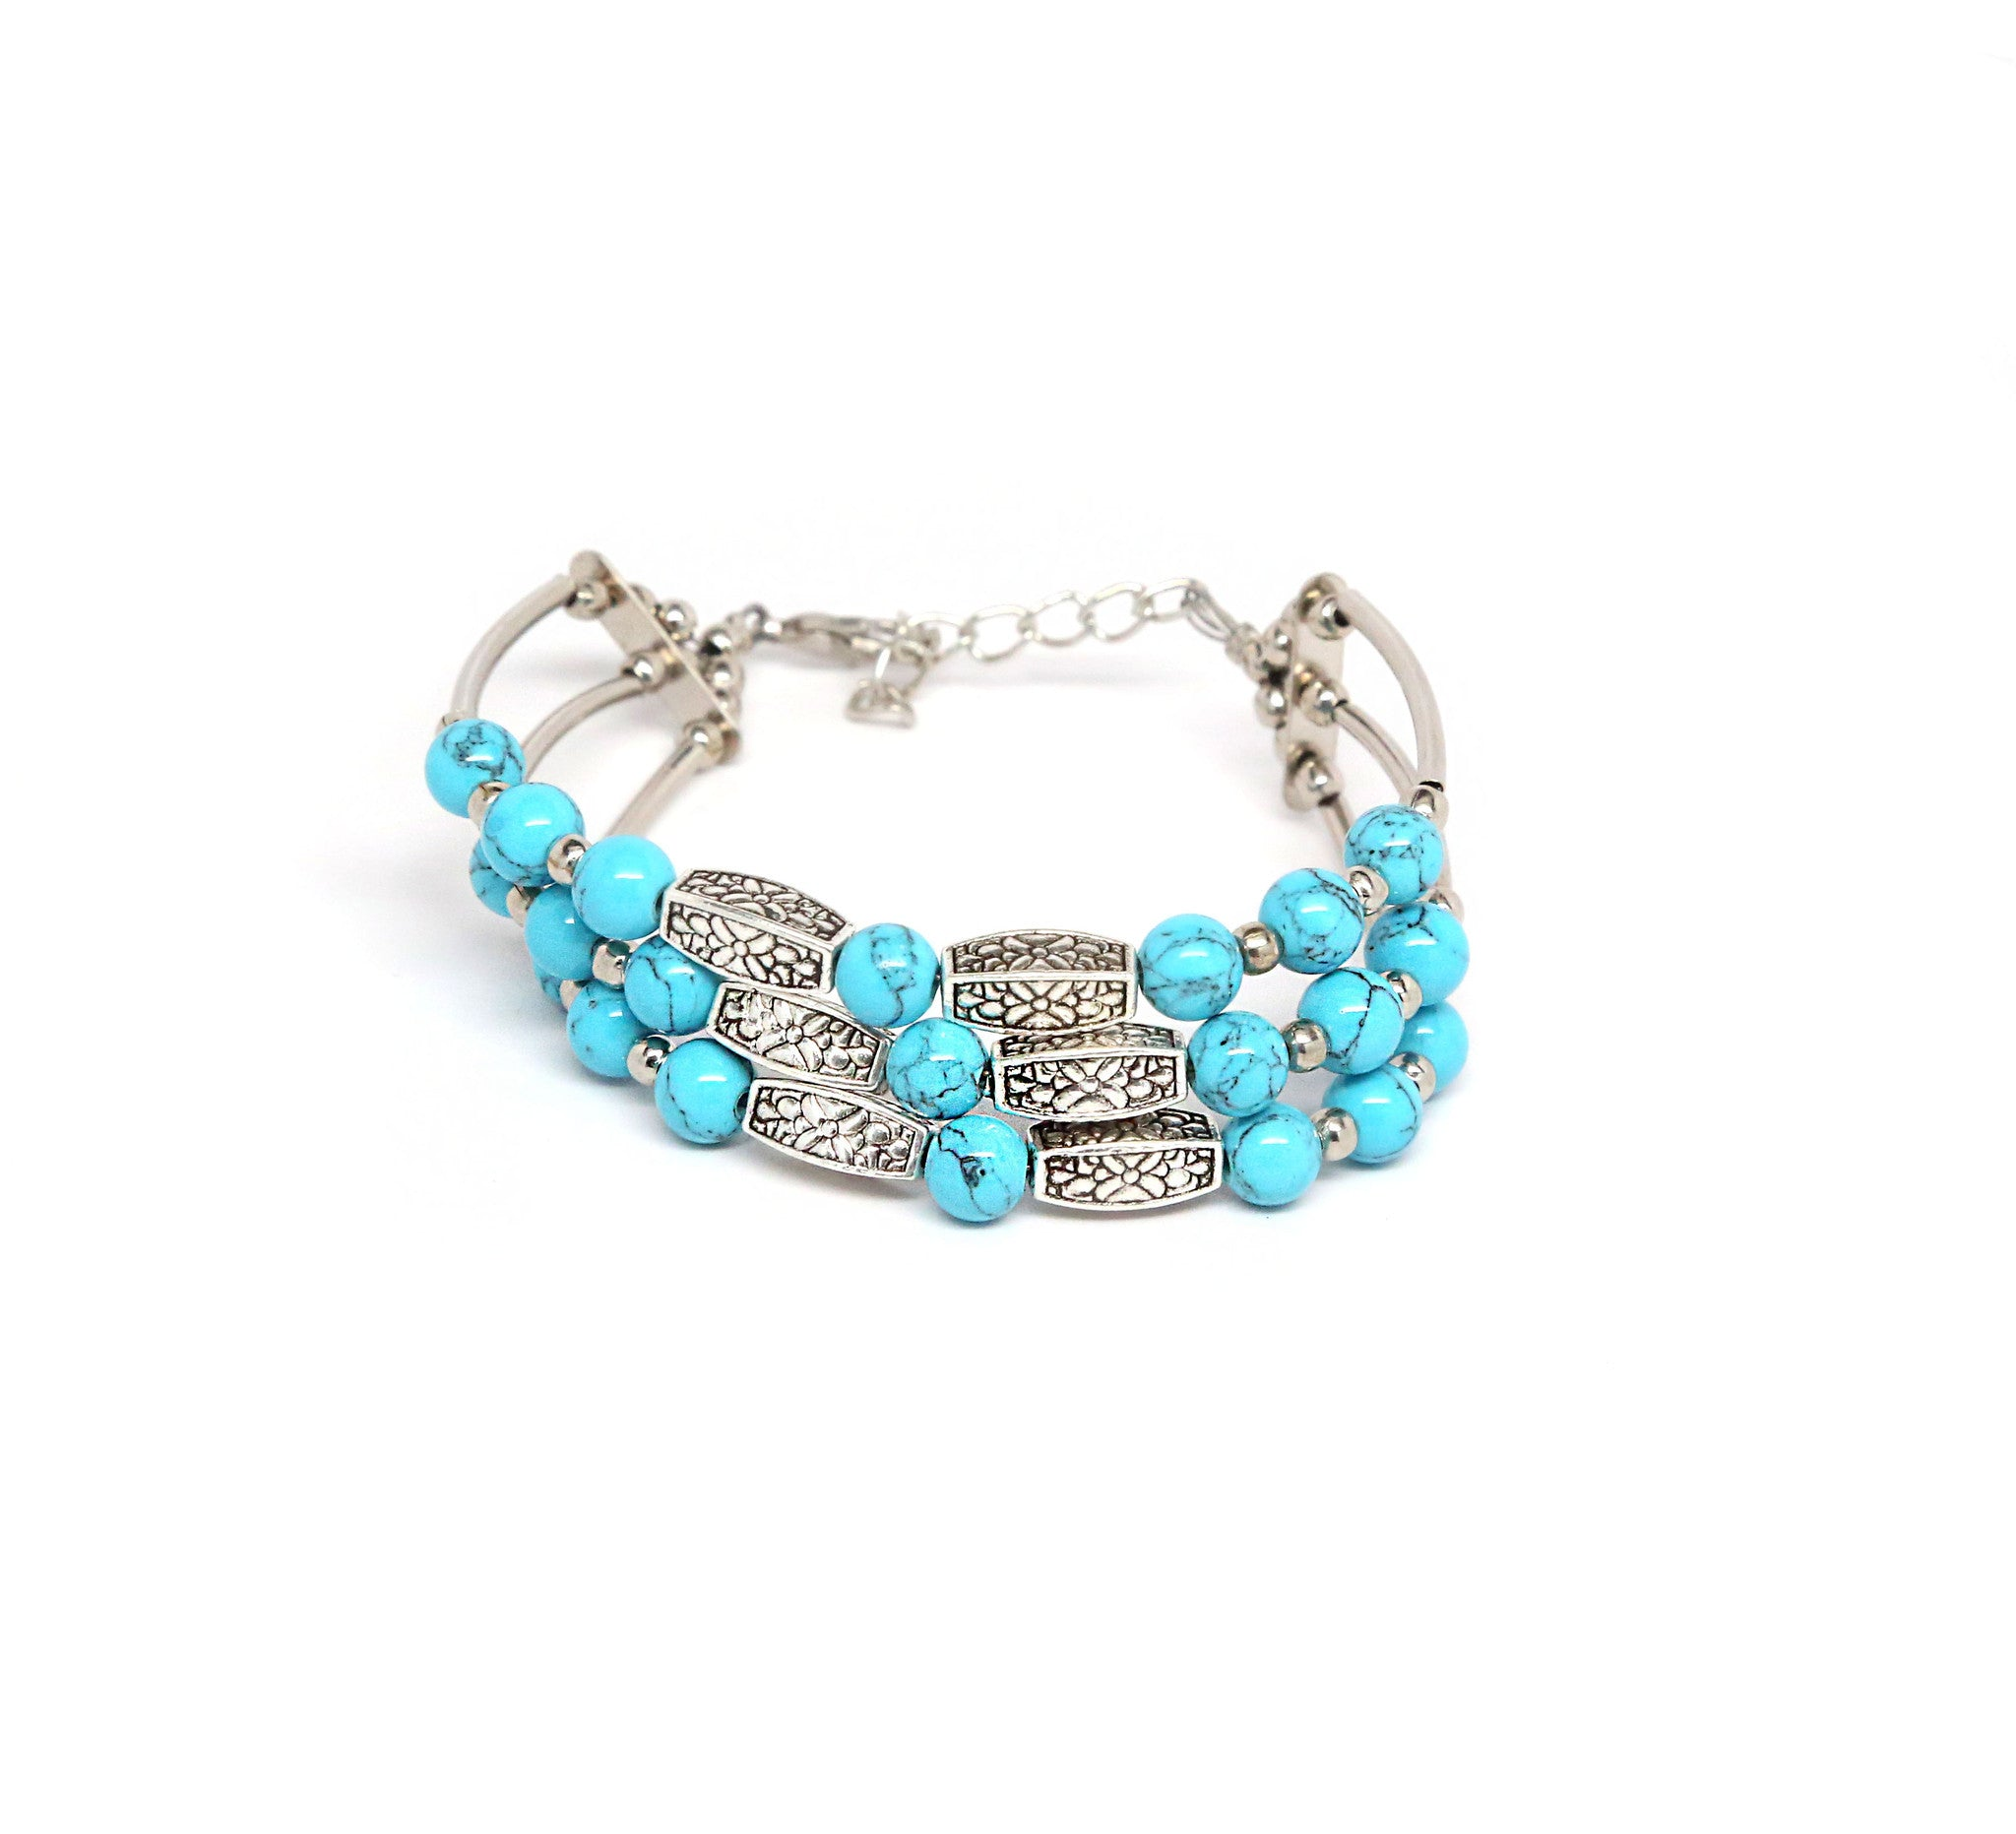 Turquoise Beads Bracelet with Marble Pattern Charms